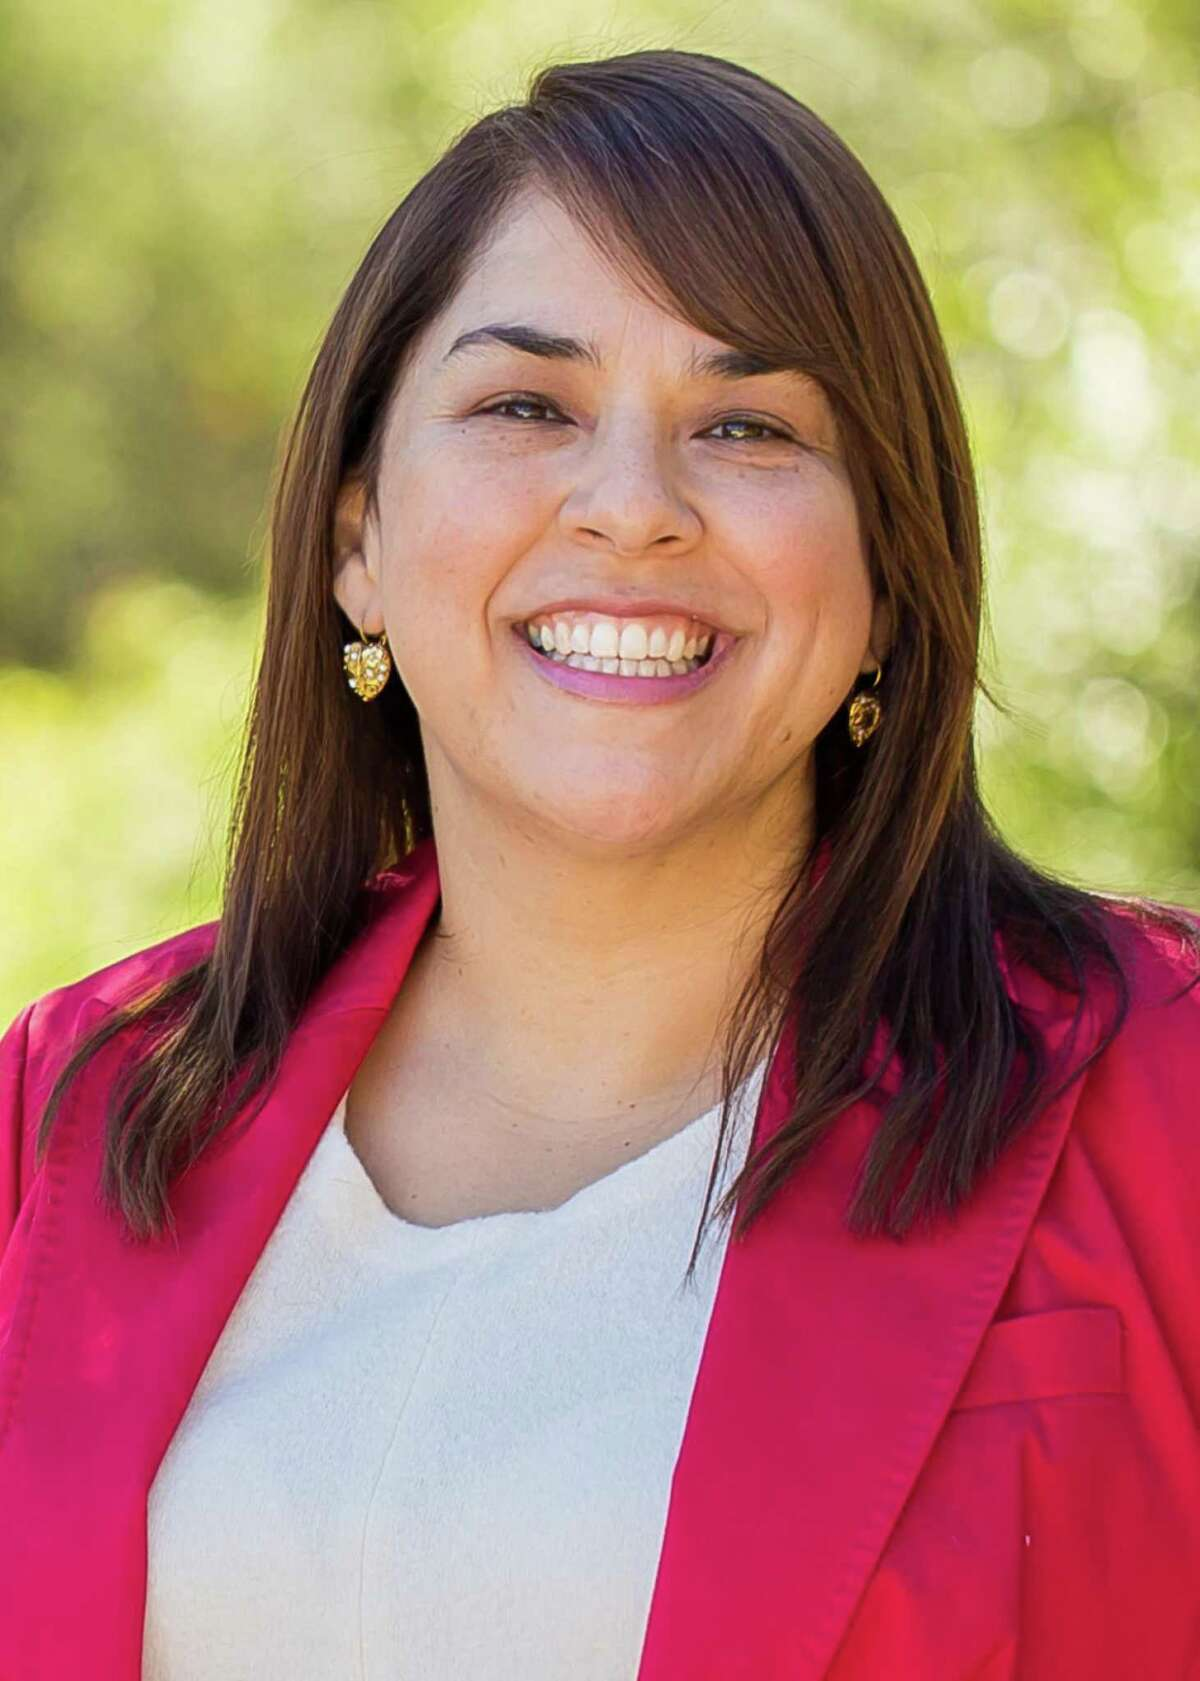 Phyllis Viagran, older sister of District 3 Councilwoman Rebecca Viagran, is in a runoff to succeed her sister. Her opponent is former state Rep. Tomas Uresti.